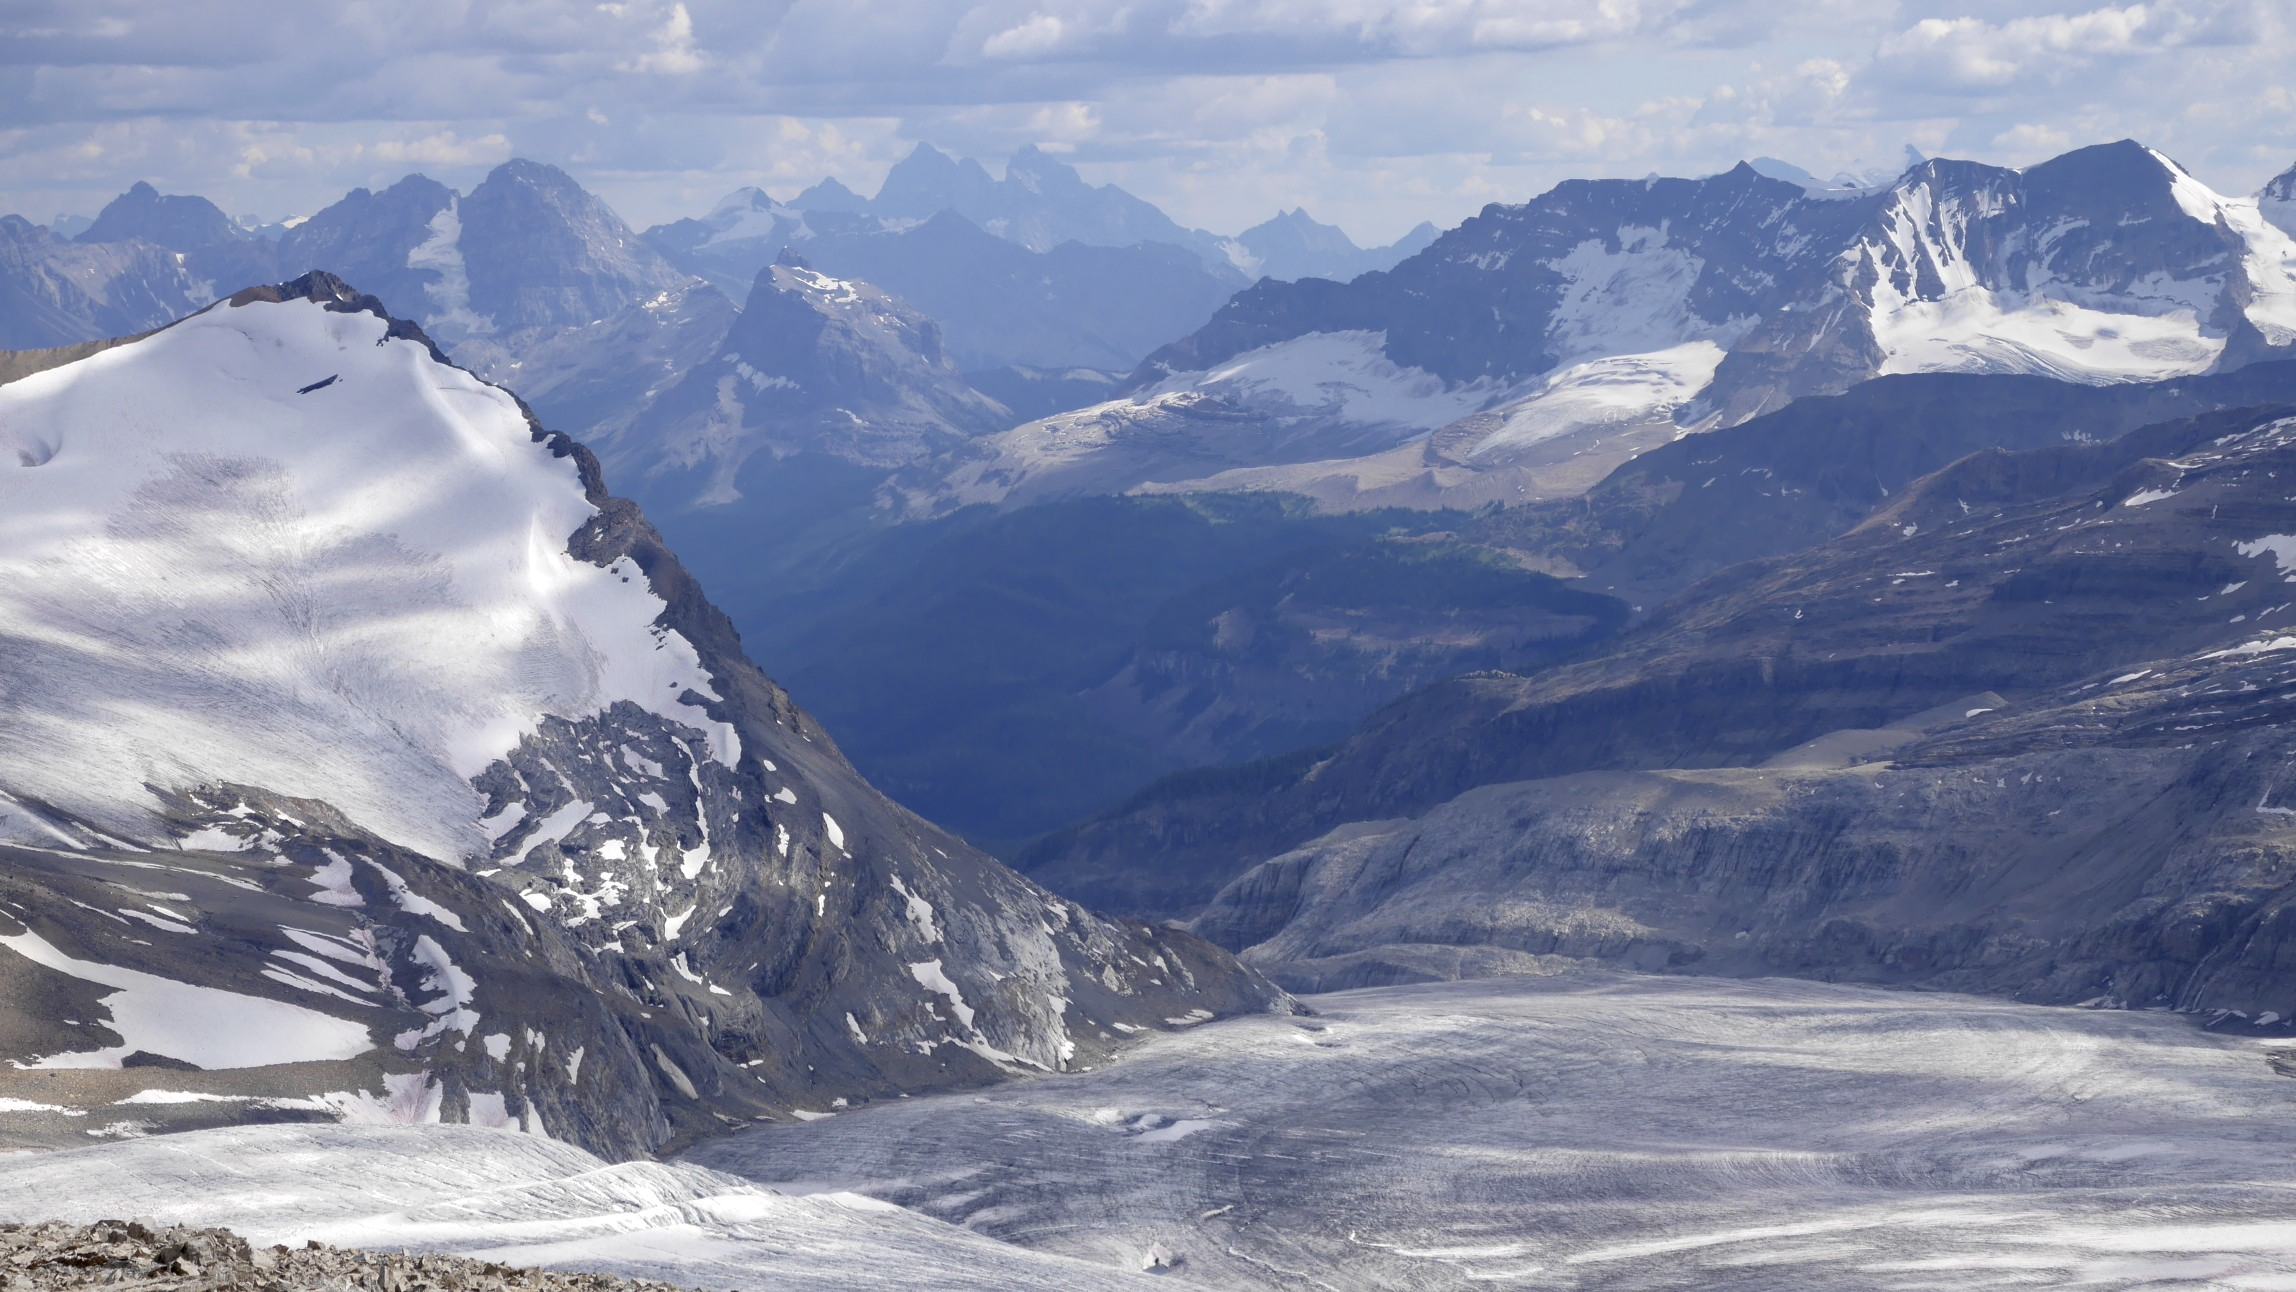 The Iceline trail and the Yoho Valley from Mt. Rhonda